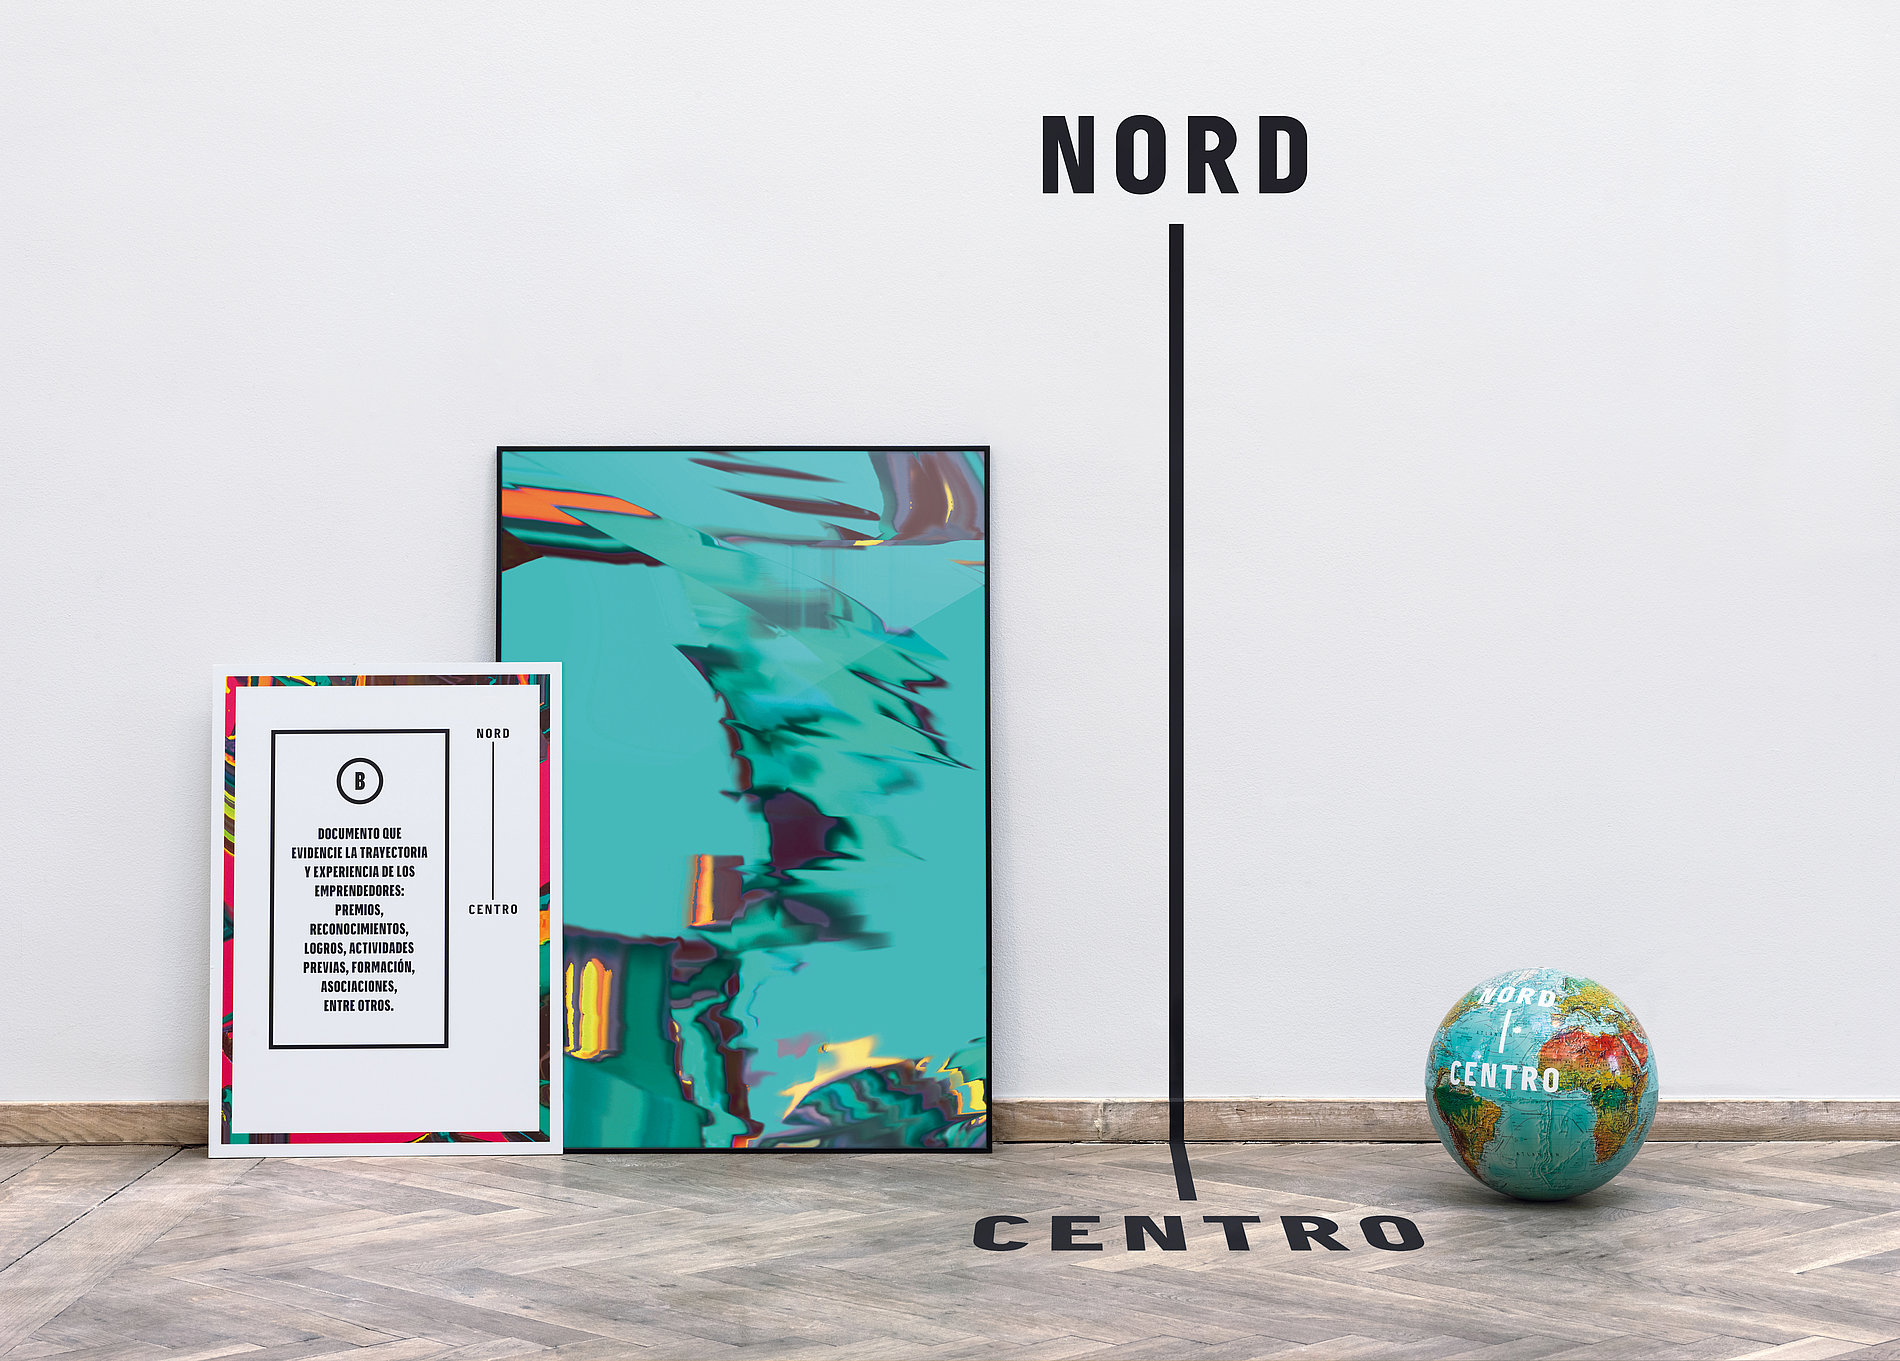 Nord Centro – A Fusion of Styles in Mexico City | Red Dot Design Award